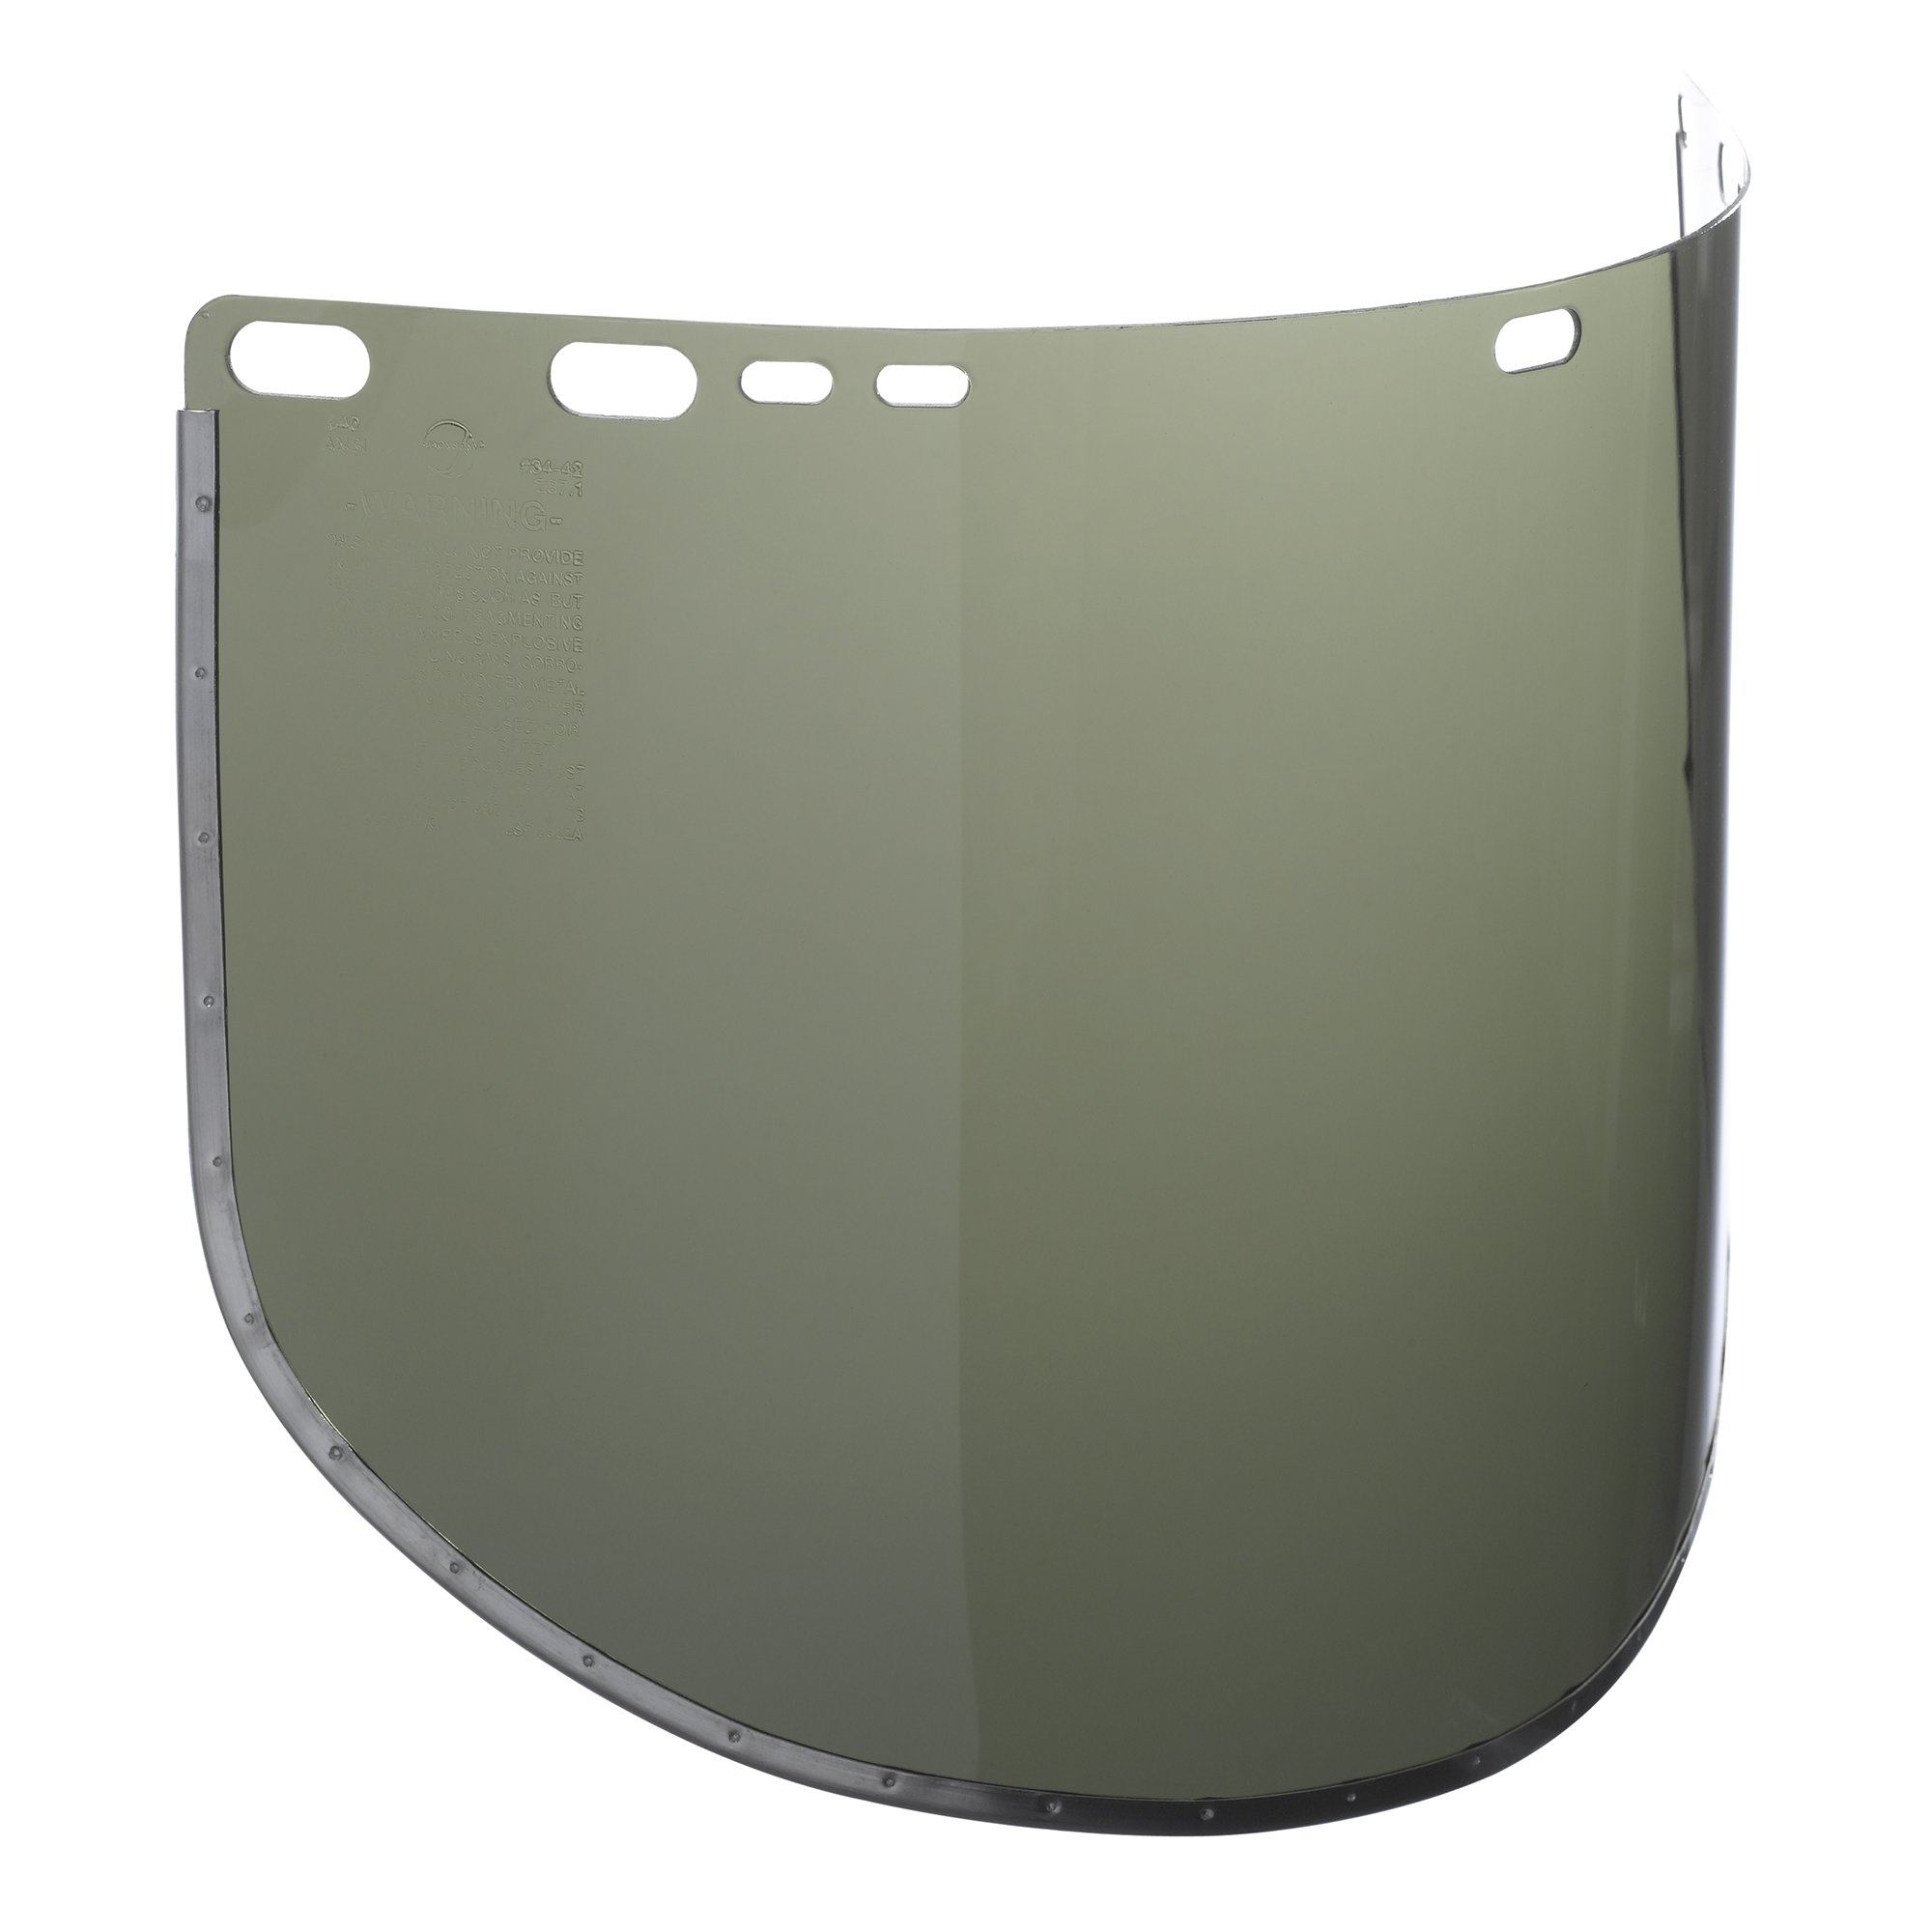 Jackson Safety F30 Acetate Face Shield (29090), 9'' x 15.5'', Dark Green, Reusable Face Protection, 50 Shields / Case by Jackson Safety